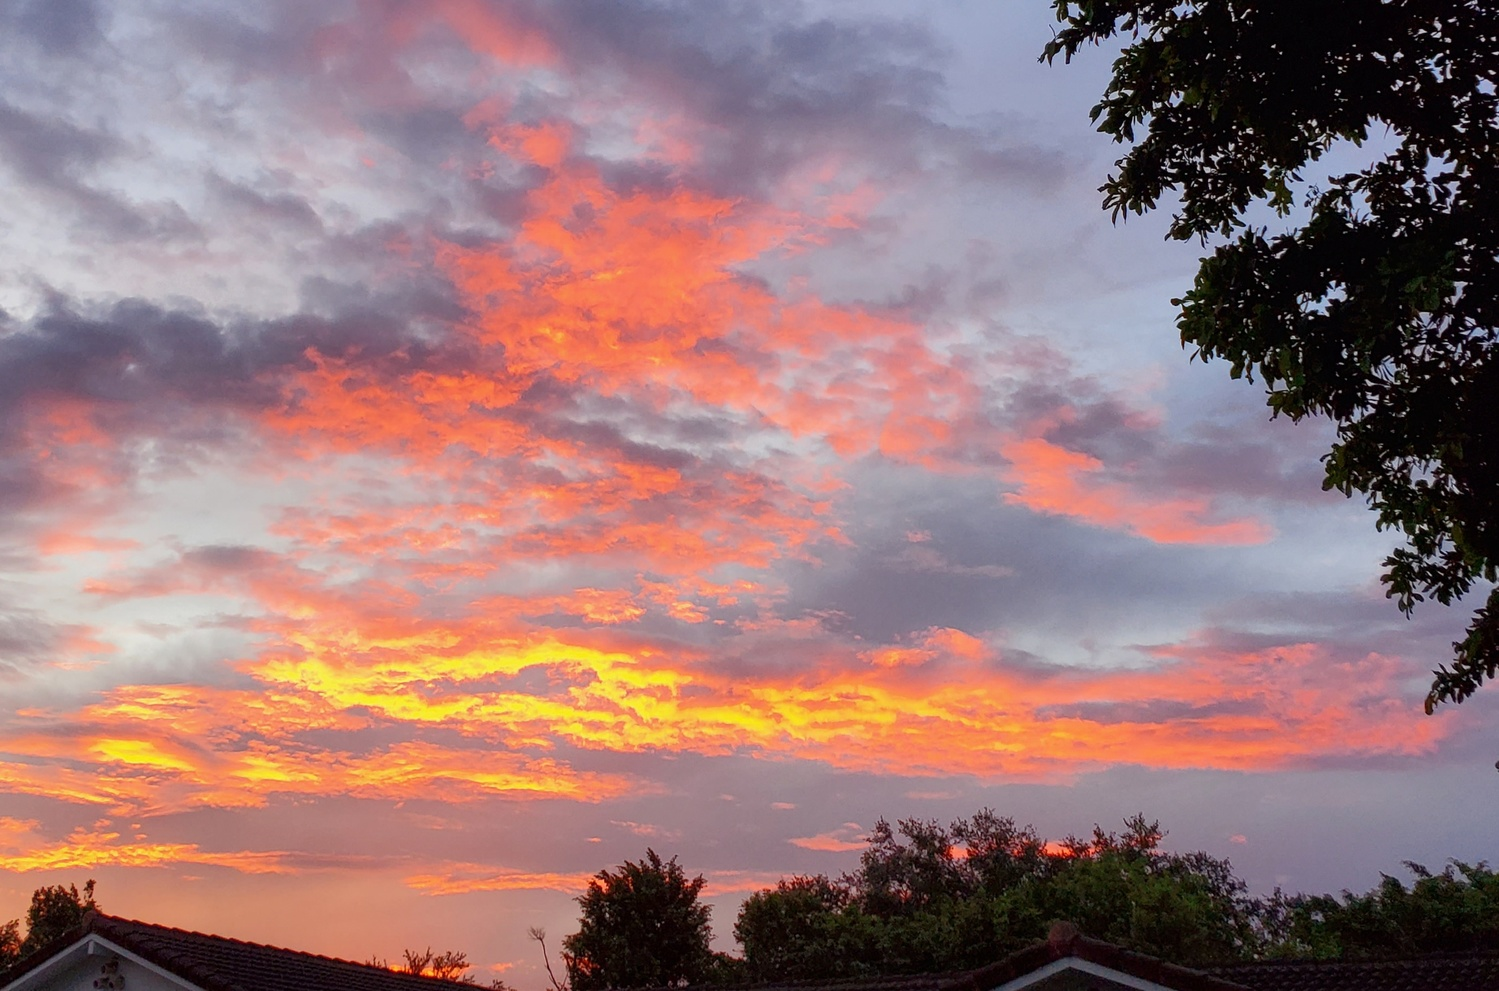 Sky on Fire by Kathy DITTON